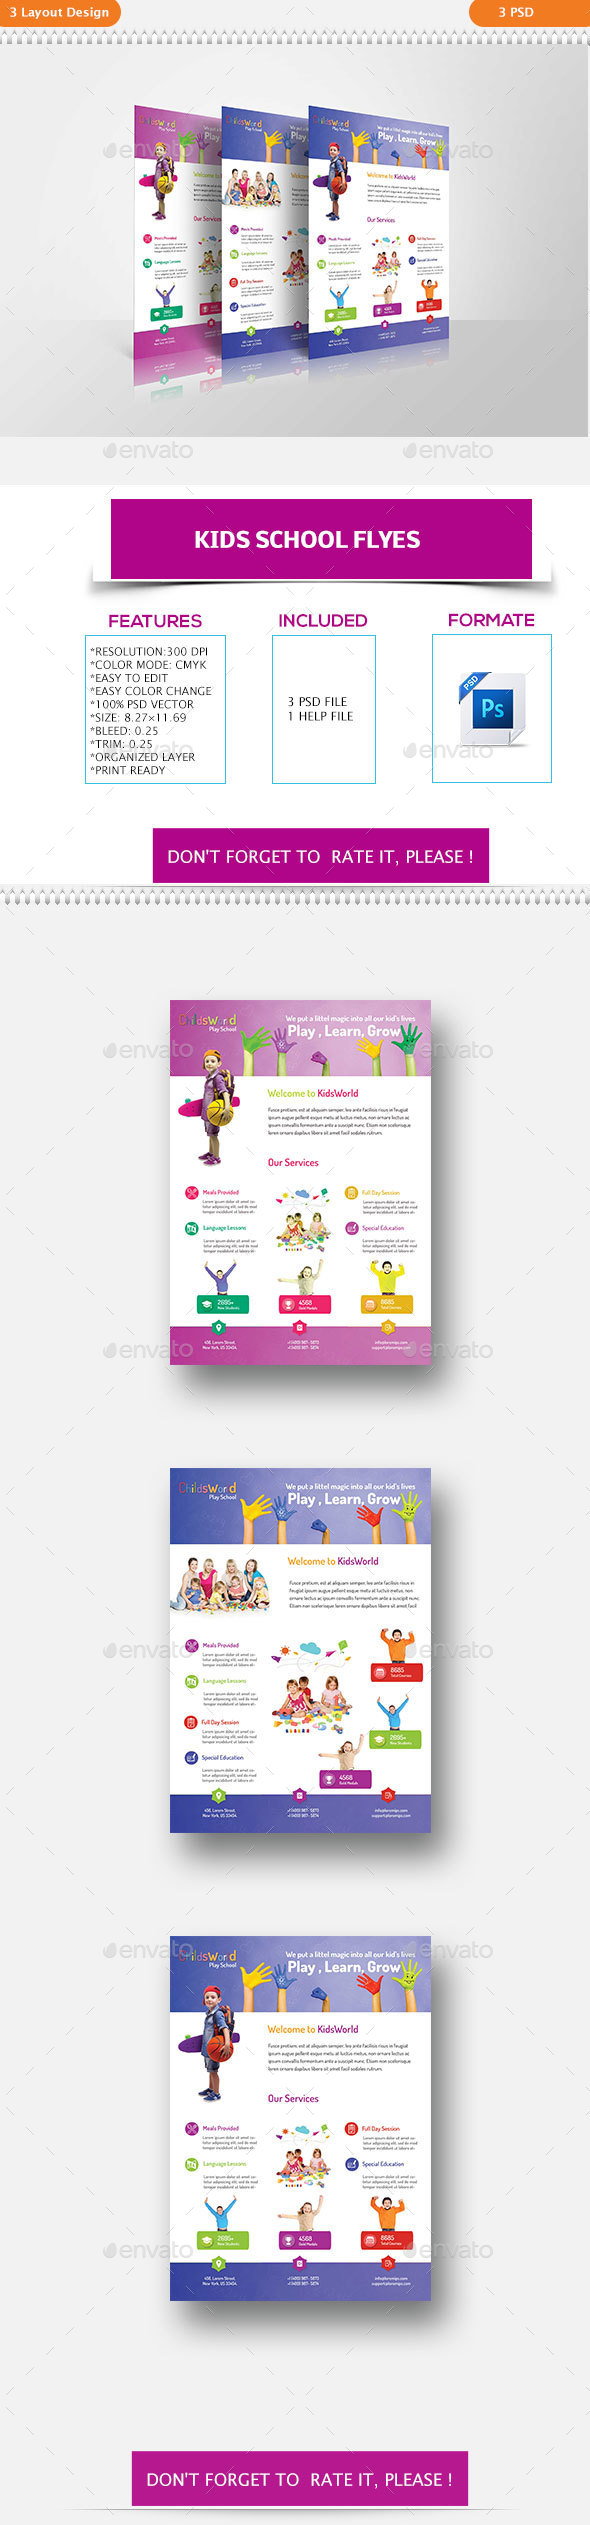 Kids School Flyers - Flyers Print Templates